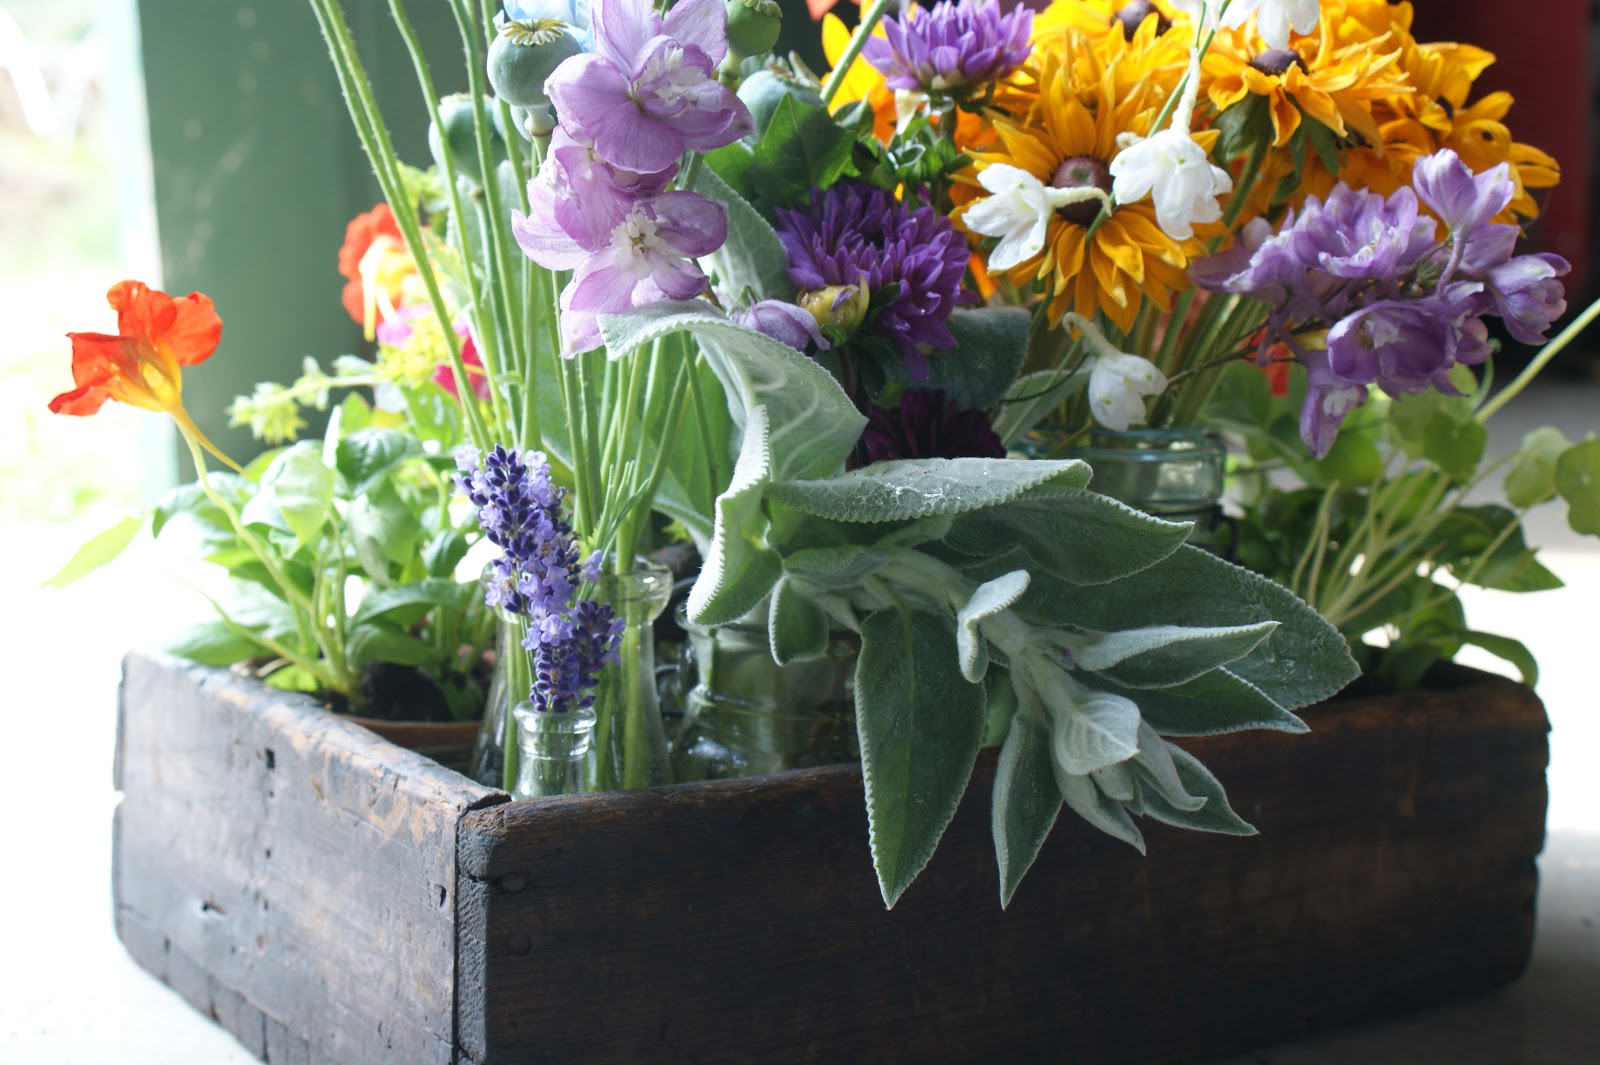 Broadturn Farm Cut Flowers and Floral Design